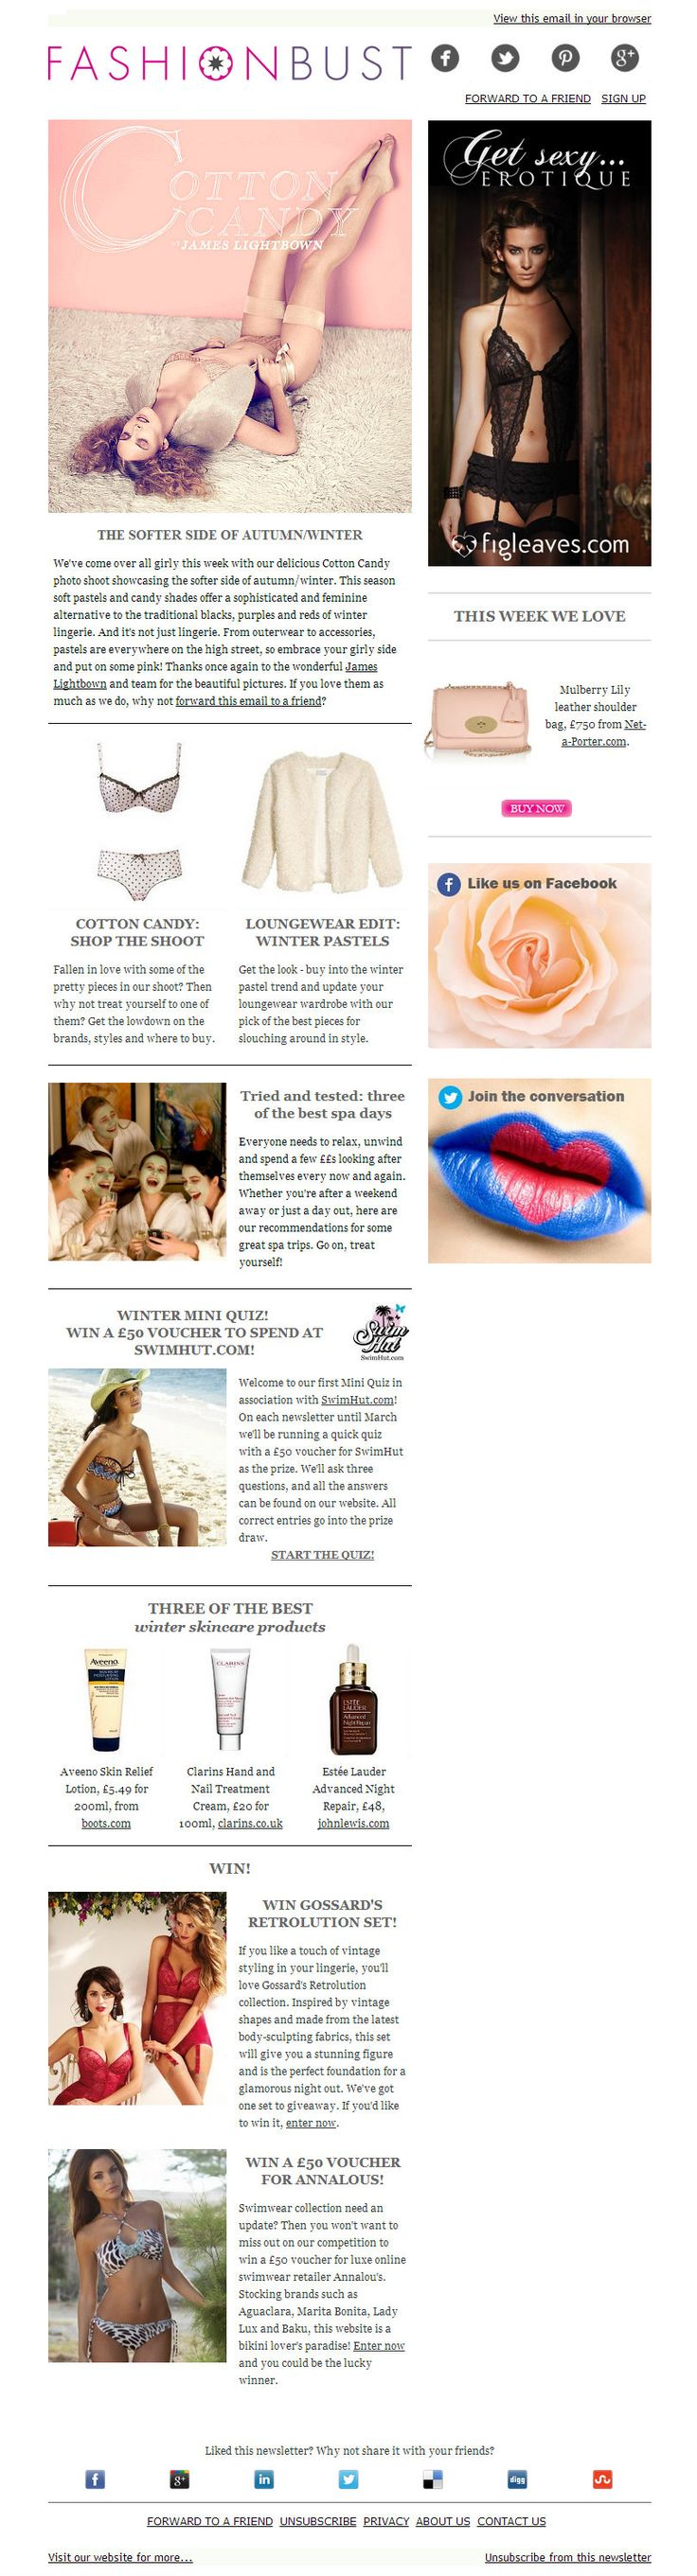 Be inspired by our Candy Candy photo shoot showcasing the pretty pastels for AW13, and curl up in some luscious loungewear. We're also pampering you with three of the best spa breaks and winter skincare must haves. Plus lots of lovely competitions!